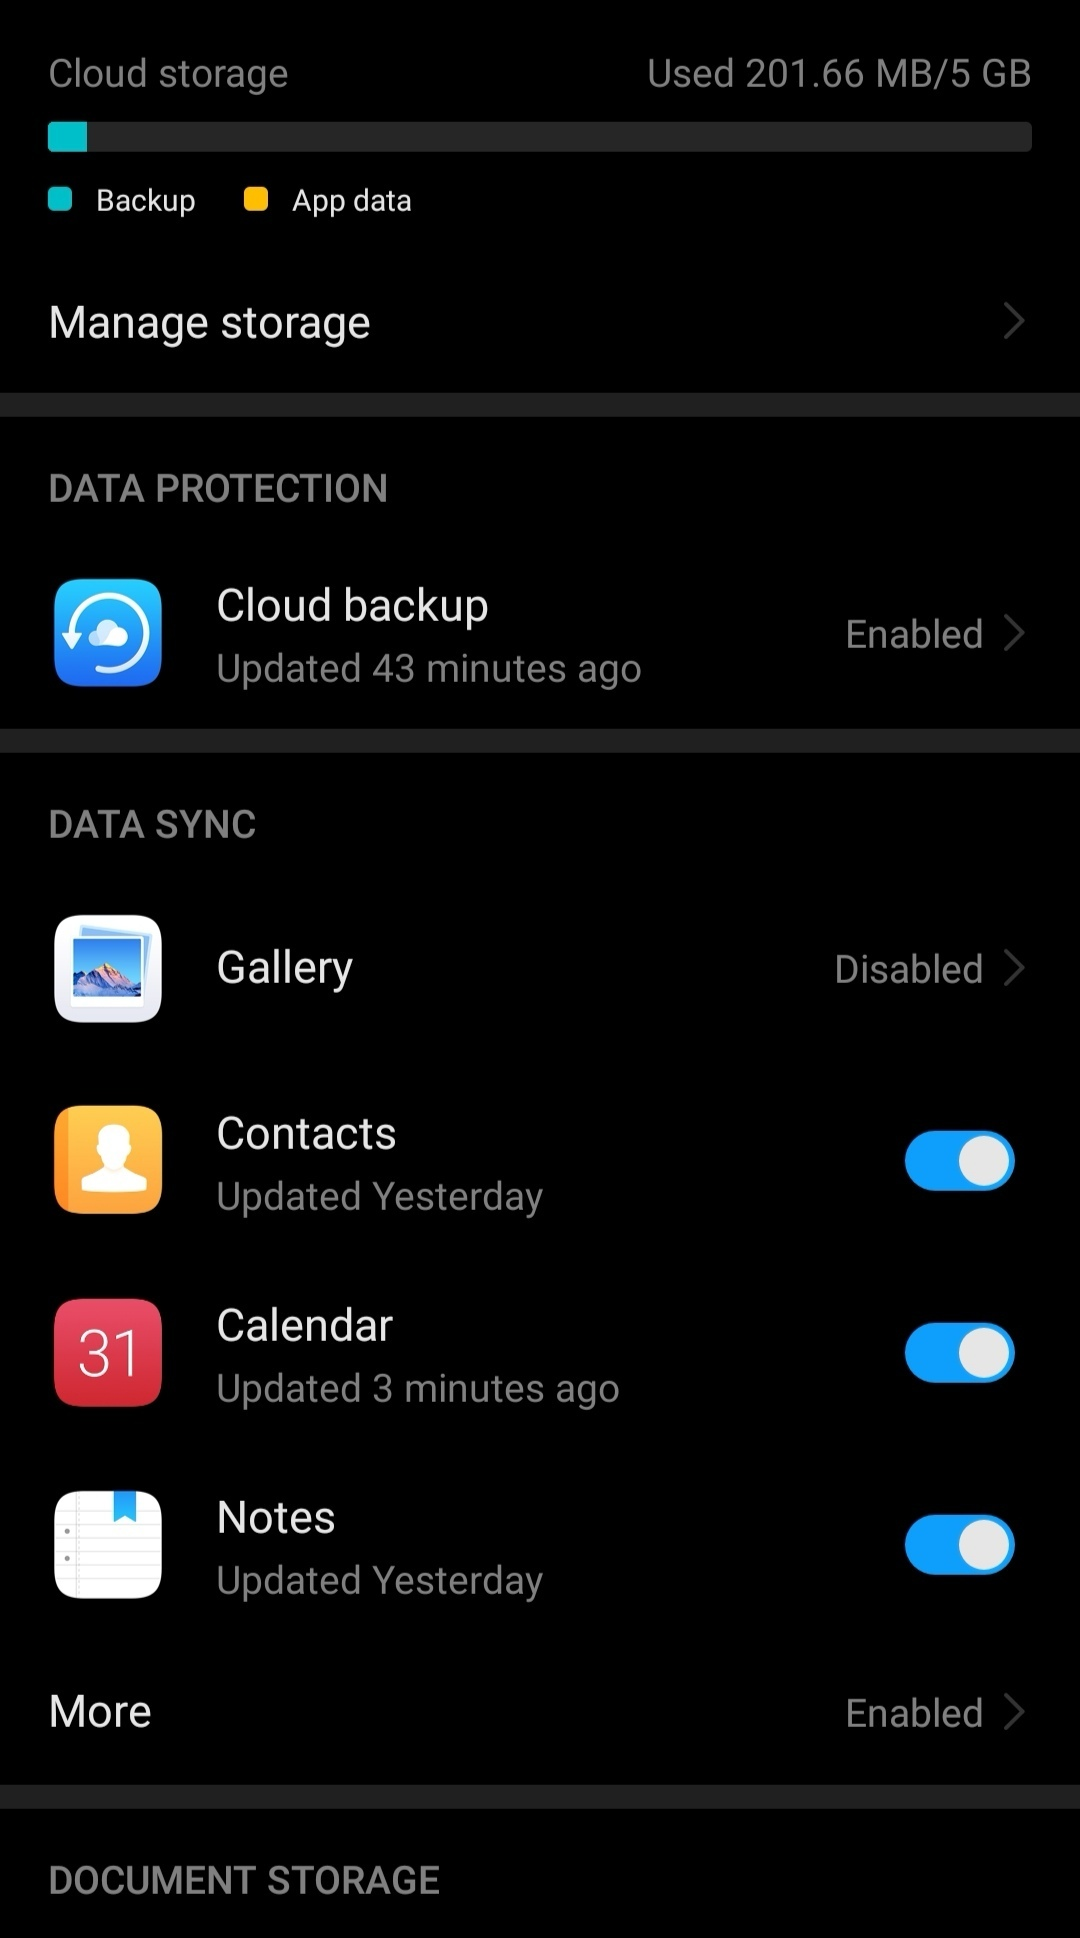 Backup to cloud - not enough space? | Official Huawei